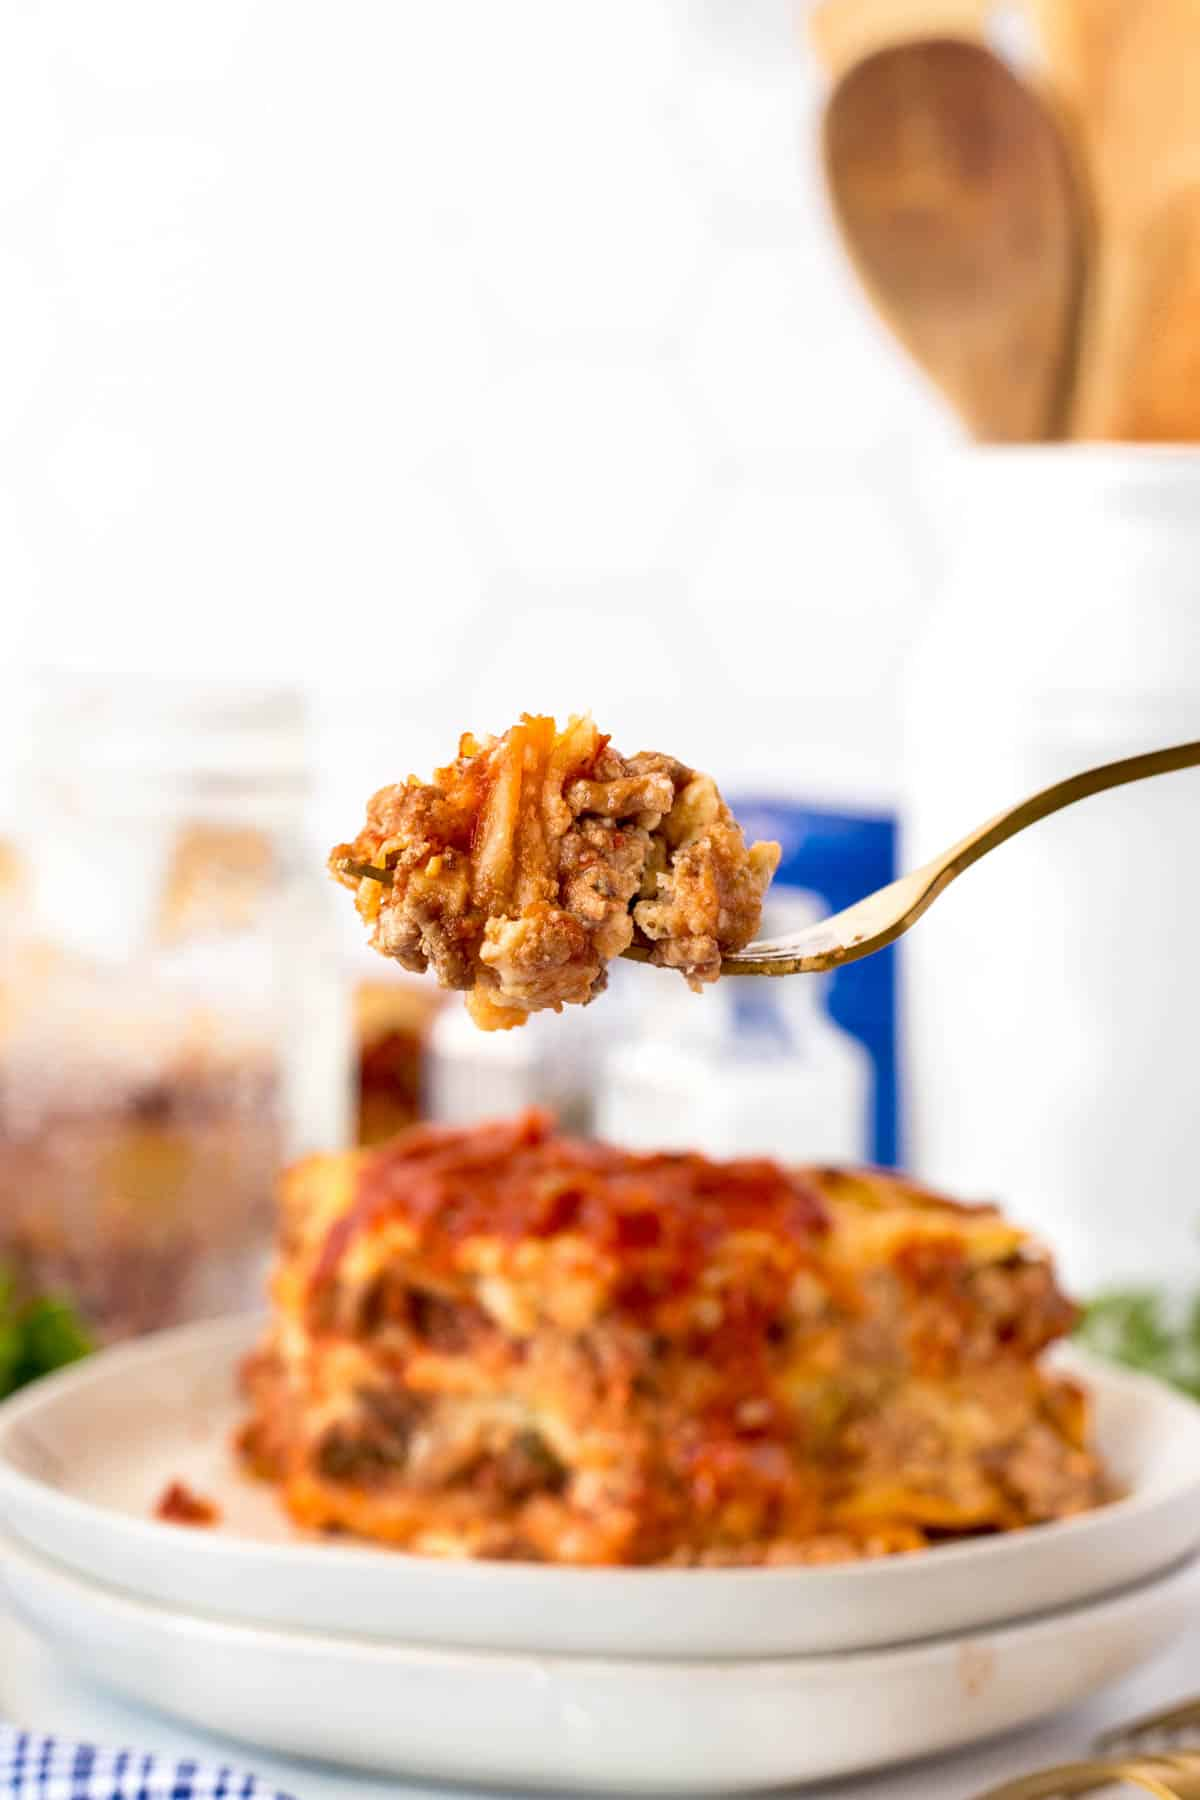 Showing a forkful of lasagna